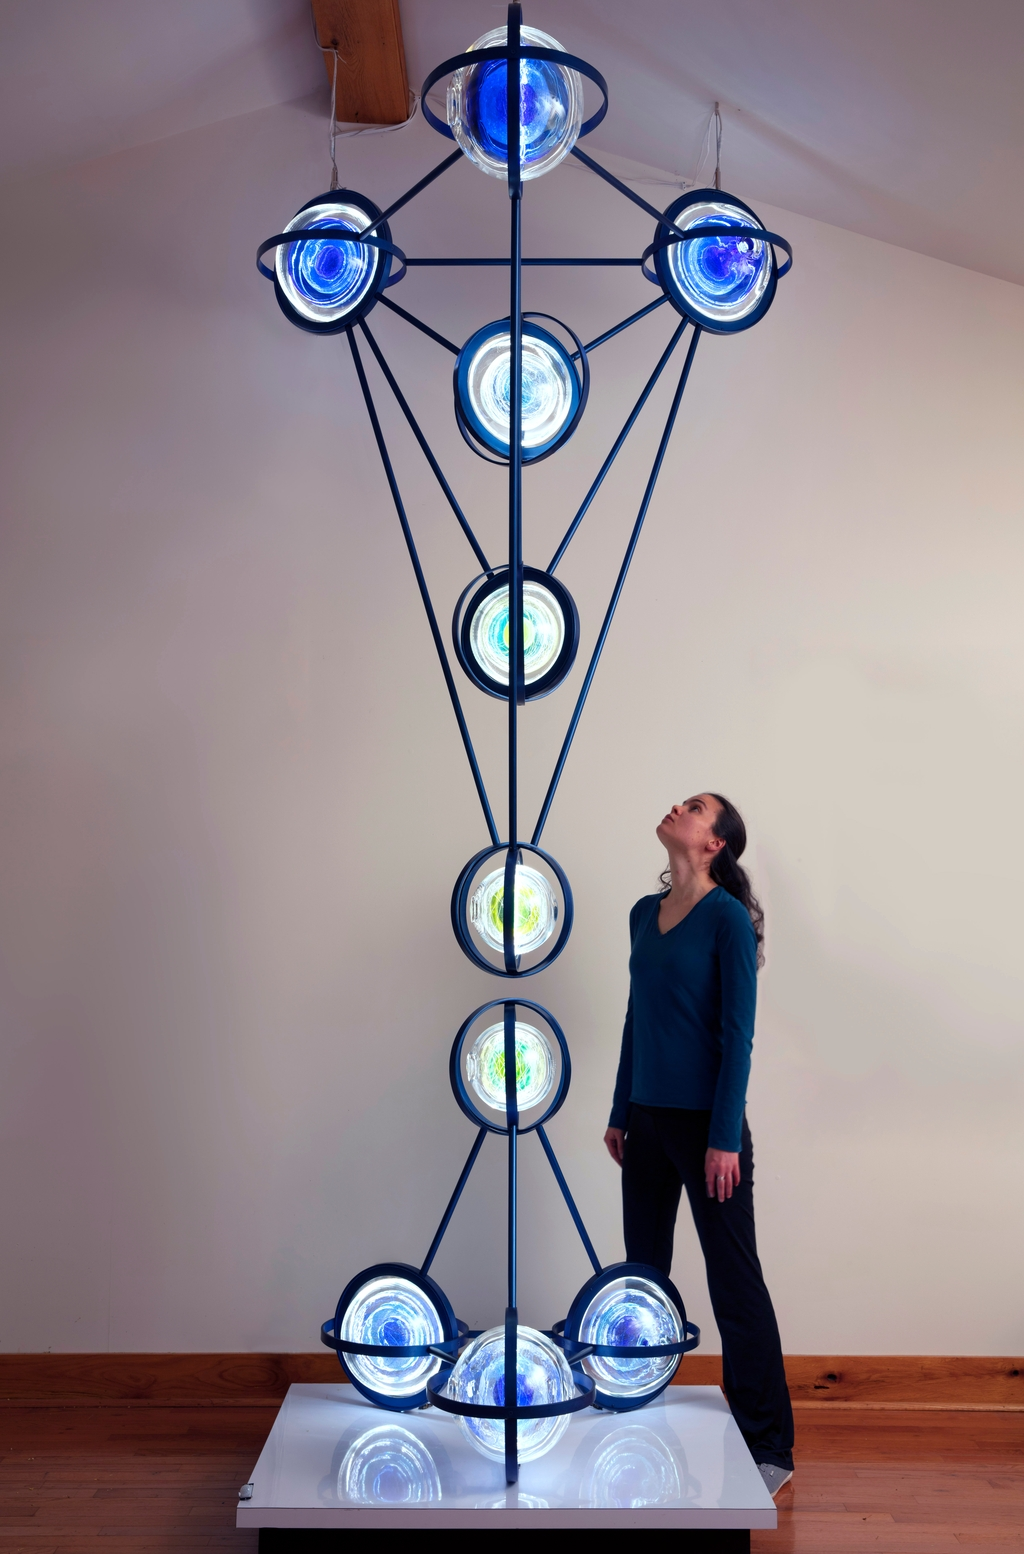 Sculpture of blown glass spheres, steel, and programmed LED lights.